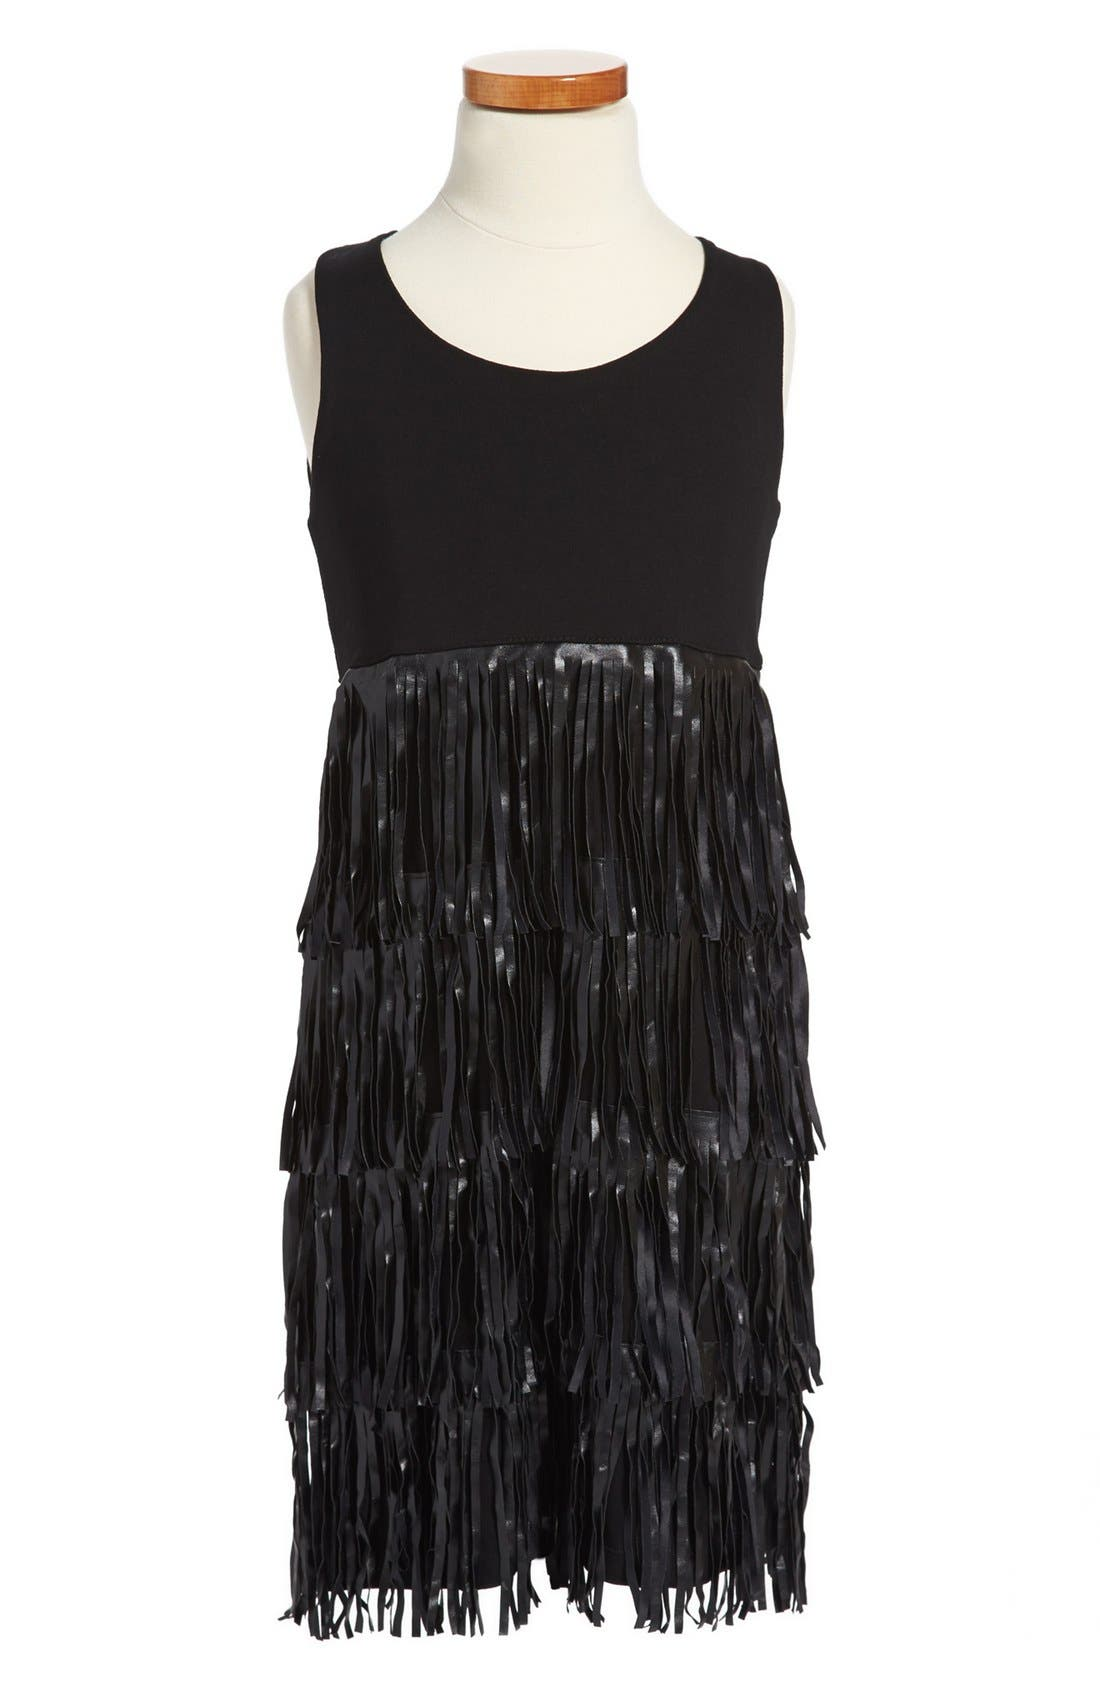 Alternate Image 1 Selected - Flowers by Zoe Sleeveless Fringe Dress (Big Girls)